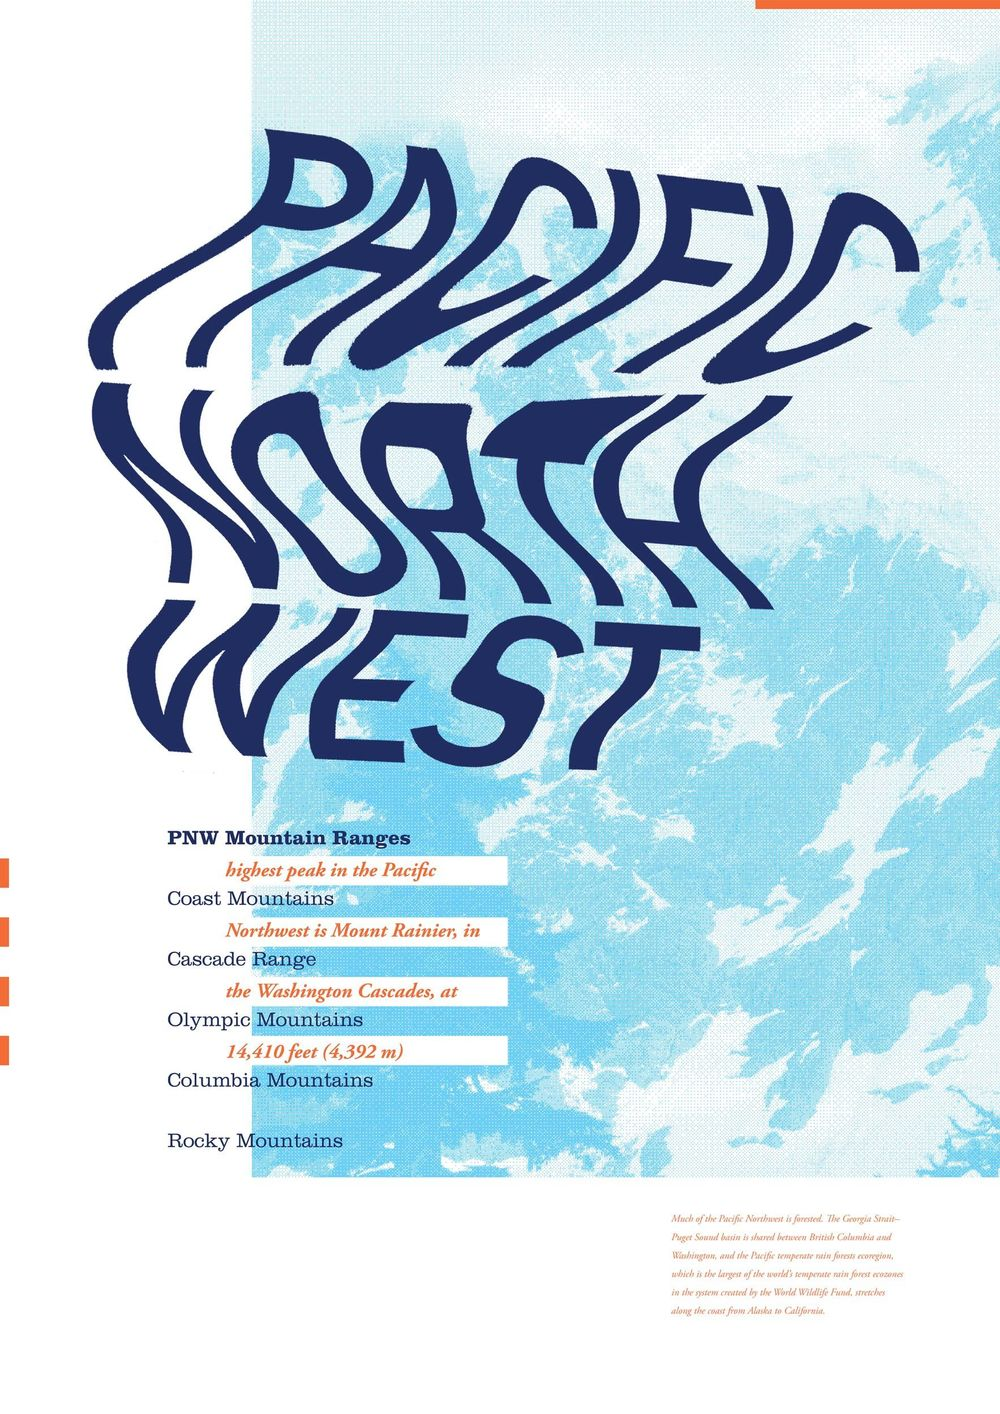 Poster on Pacific Northwest - image 1 - student project